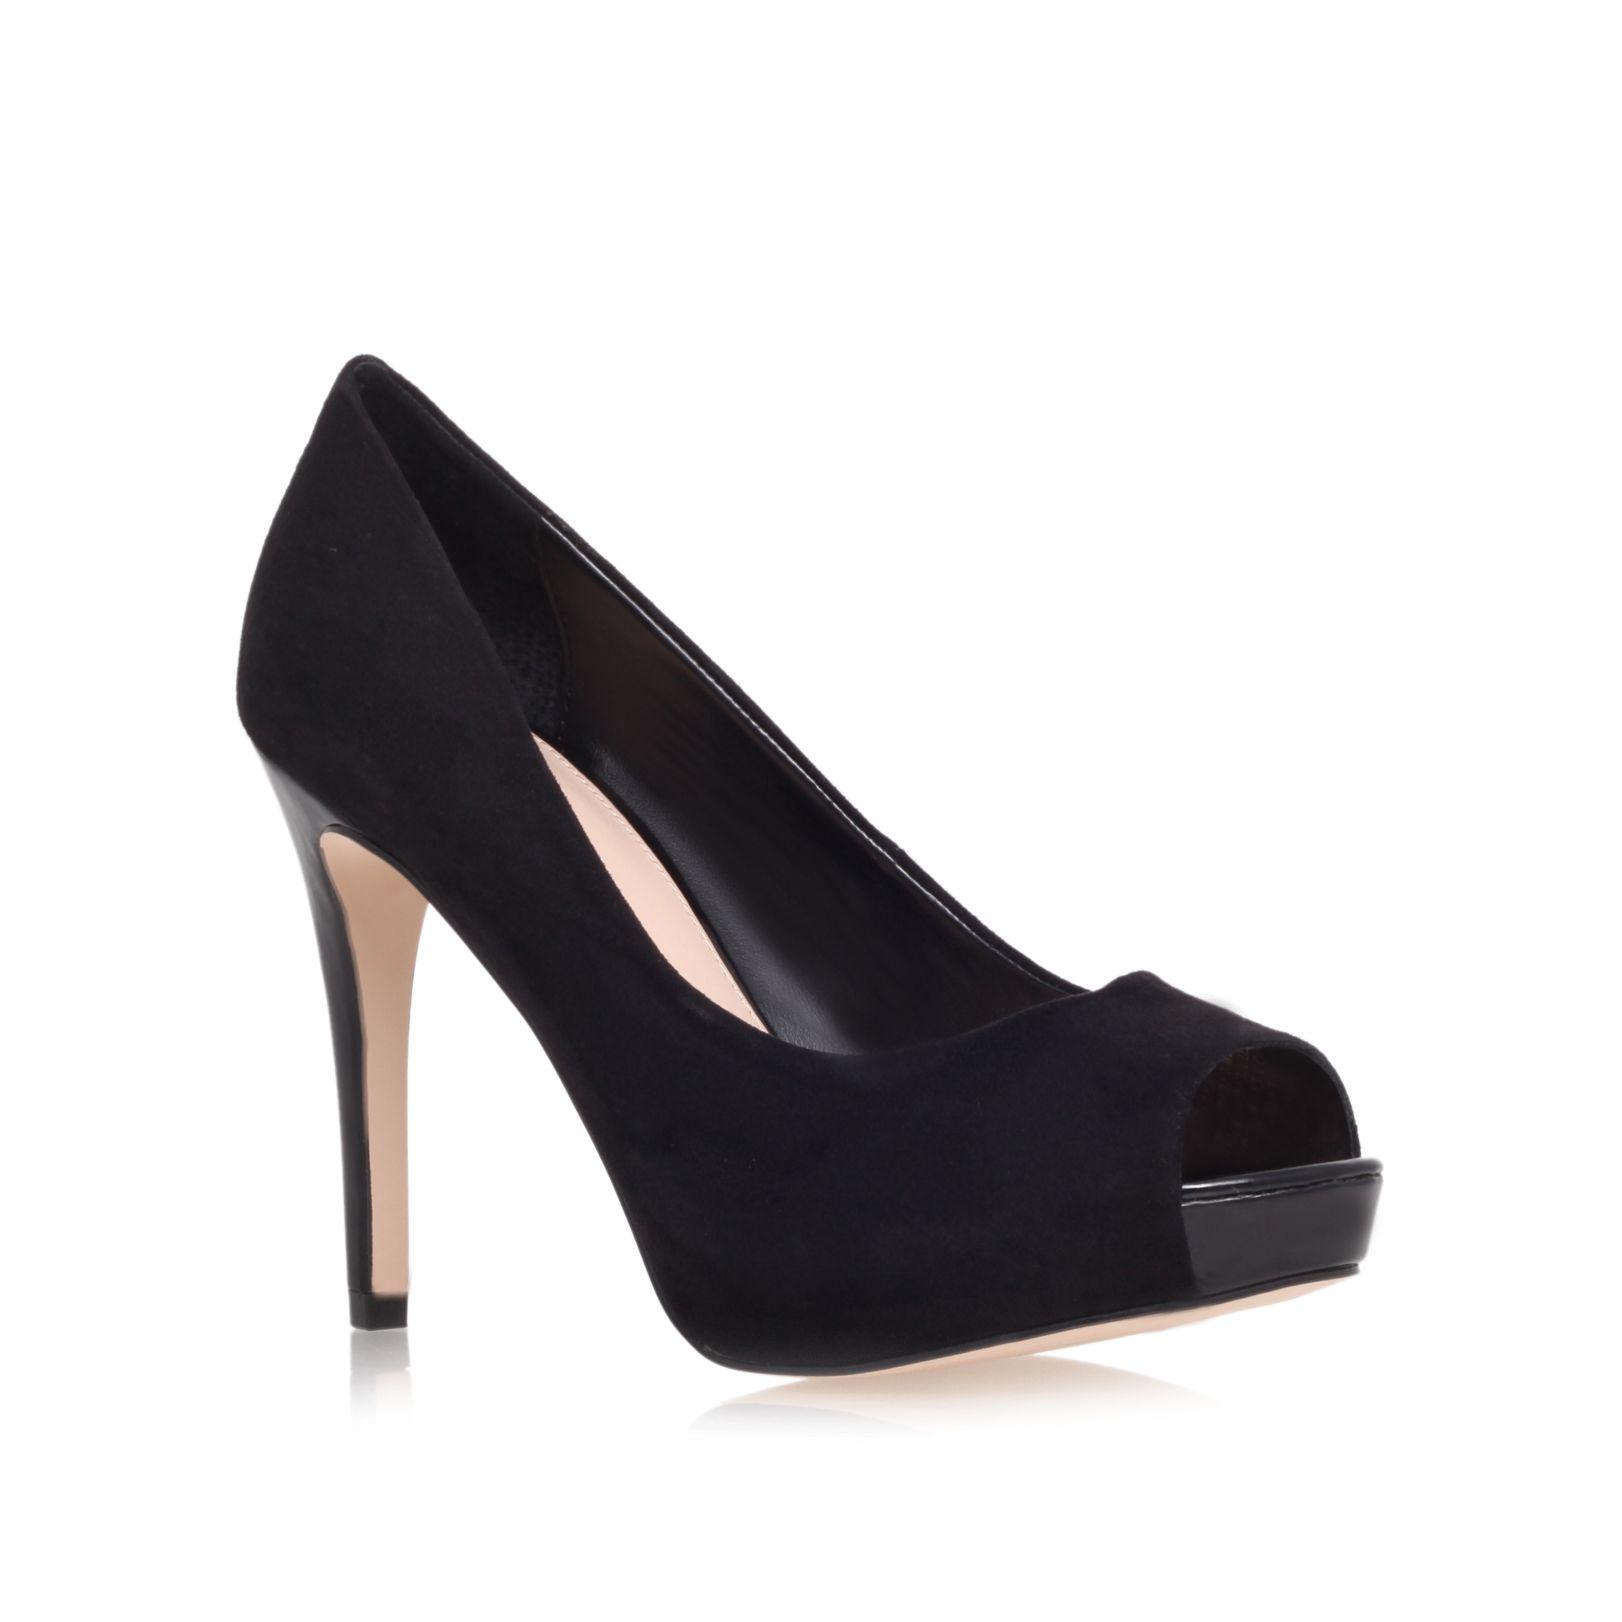 Lara high heel court shoes